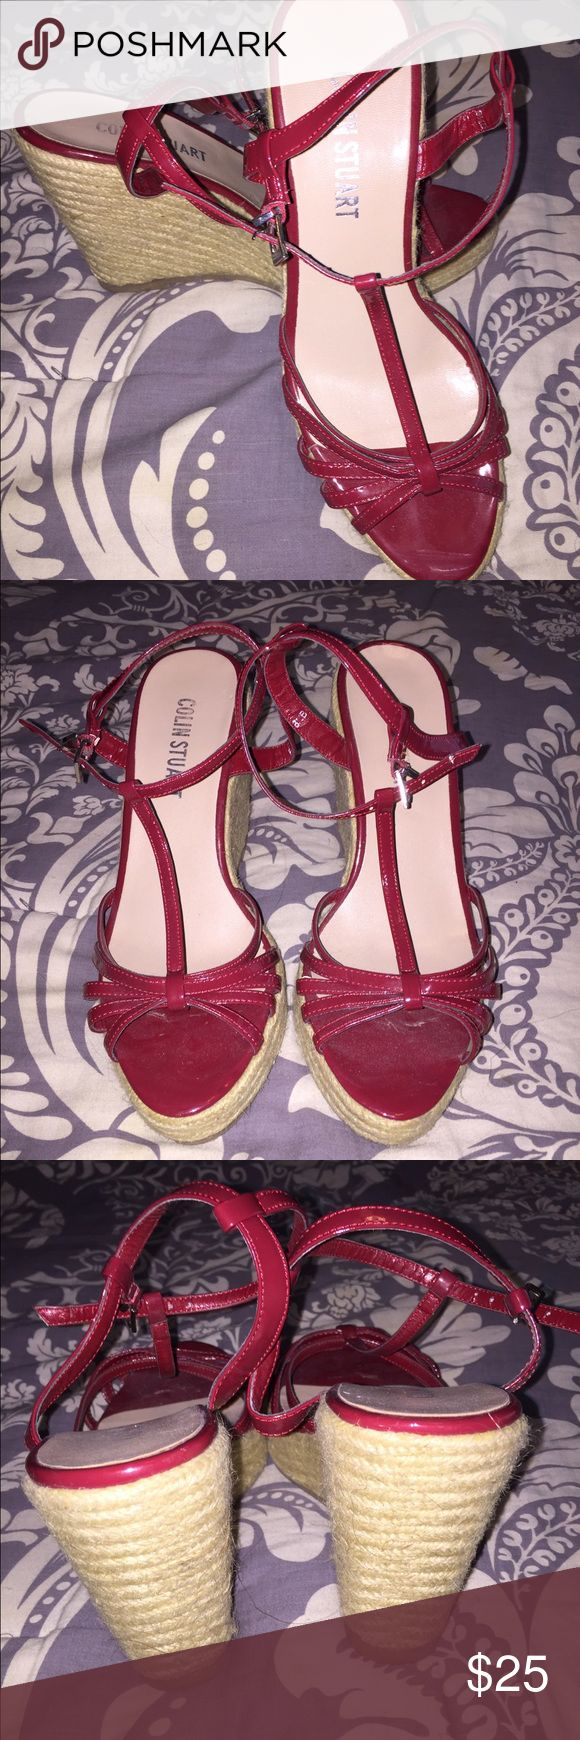 Fun summer wedges! These are gorgeous cranberry red wedges worn twice! The heel is about 3 inches. Bought from Victoria's Secret website. Colin Stuart Shoes Wedges